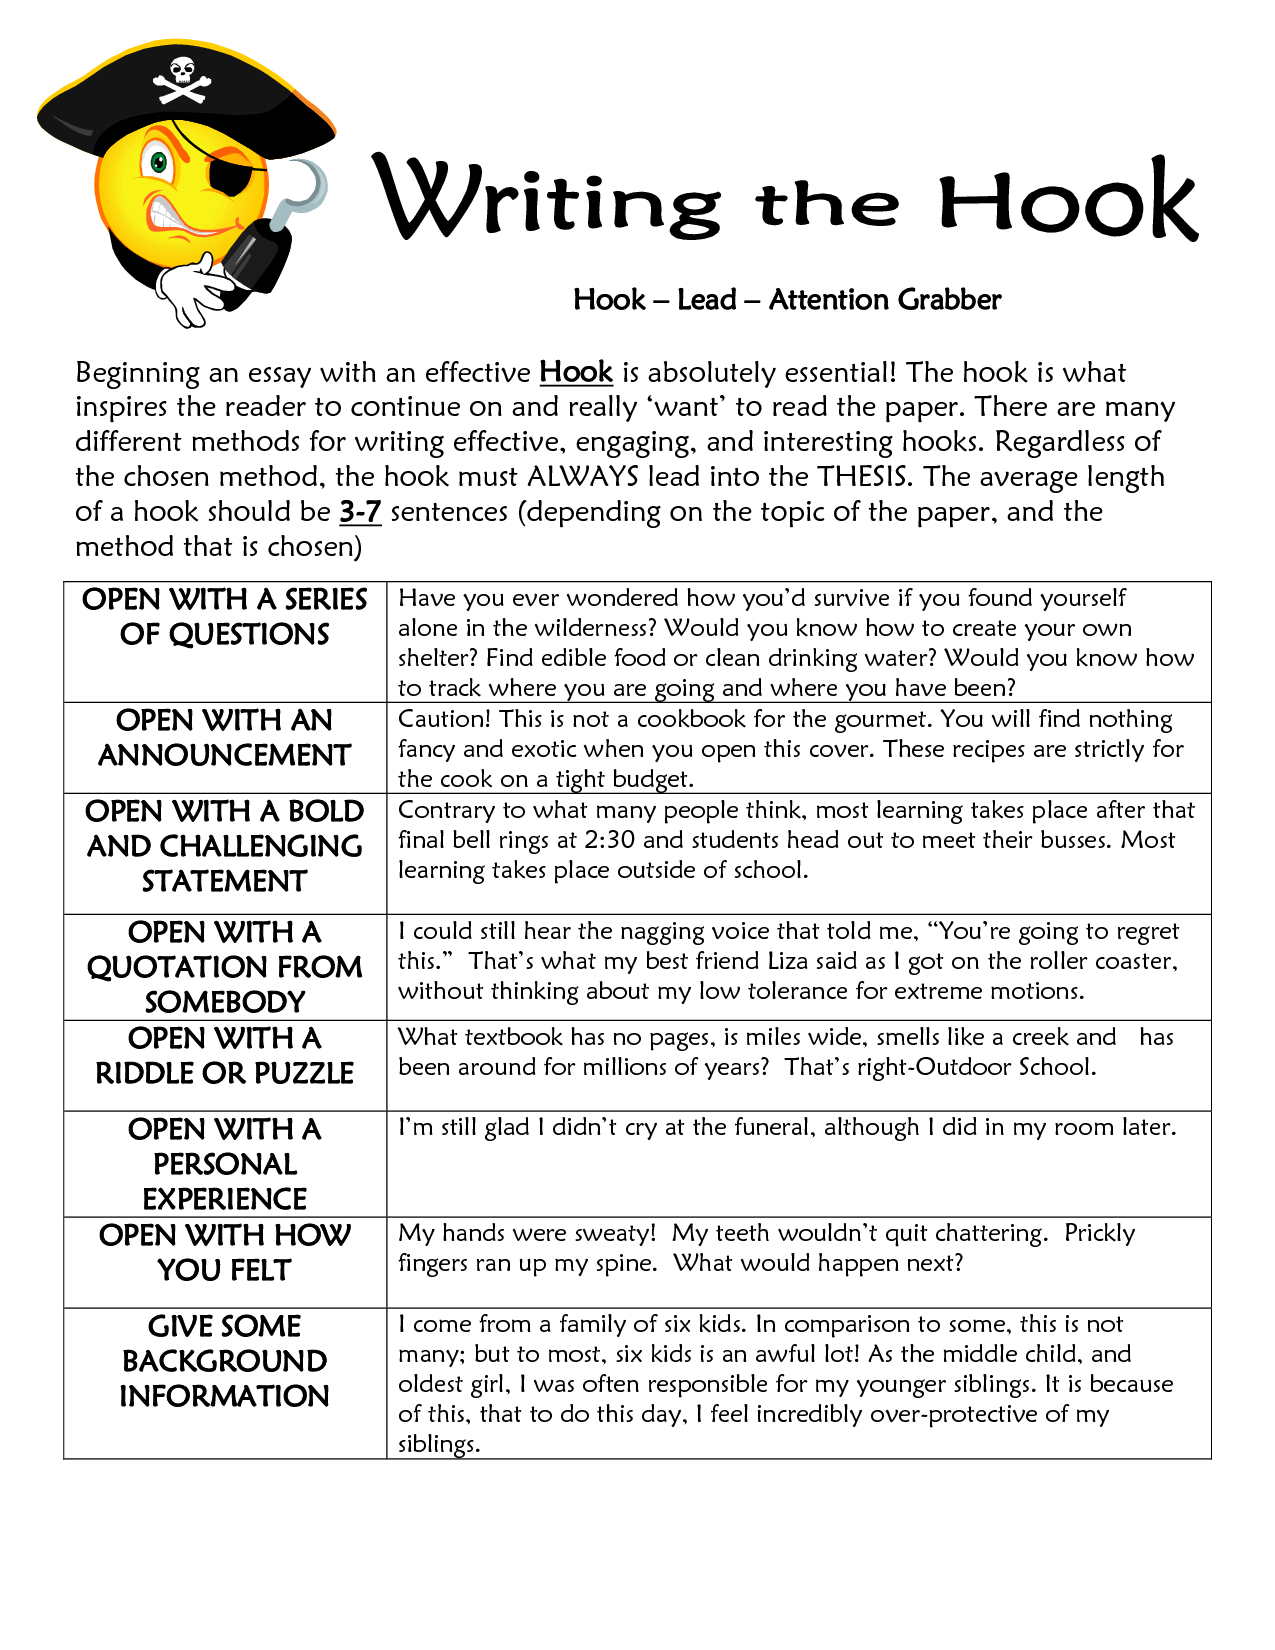 examples of essay hooks hook c lead c attention grabber writing the hook attention getter